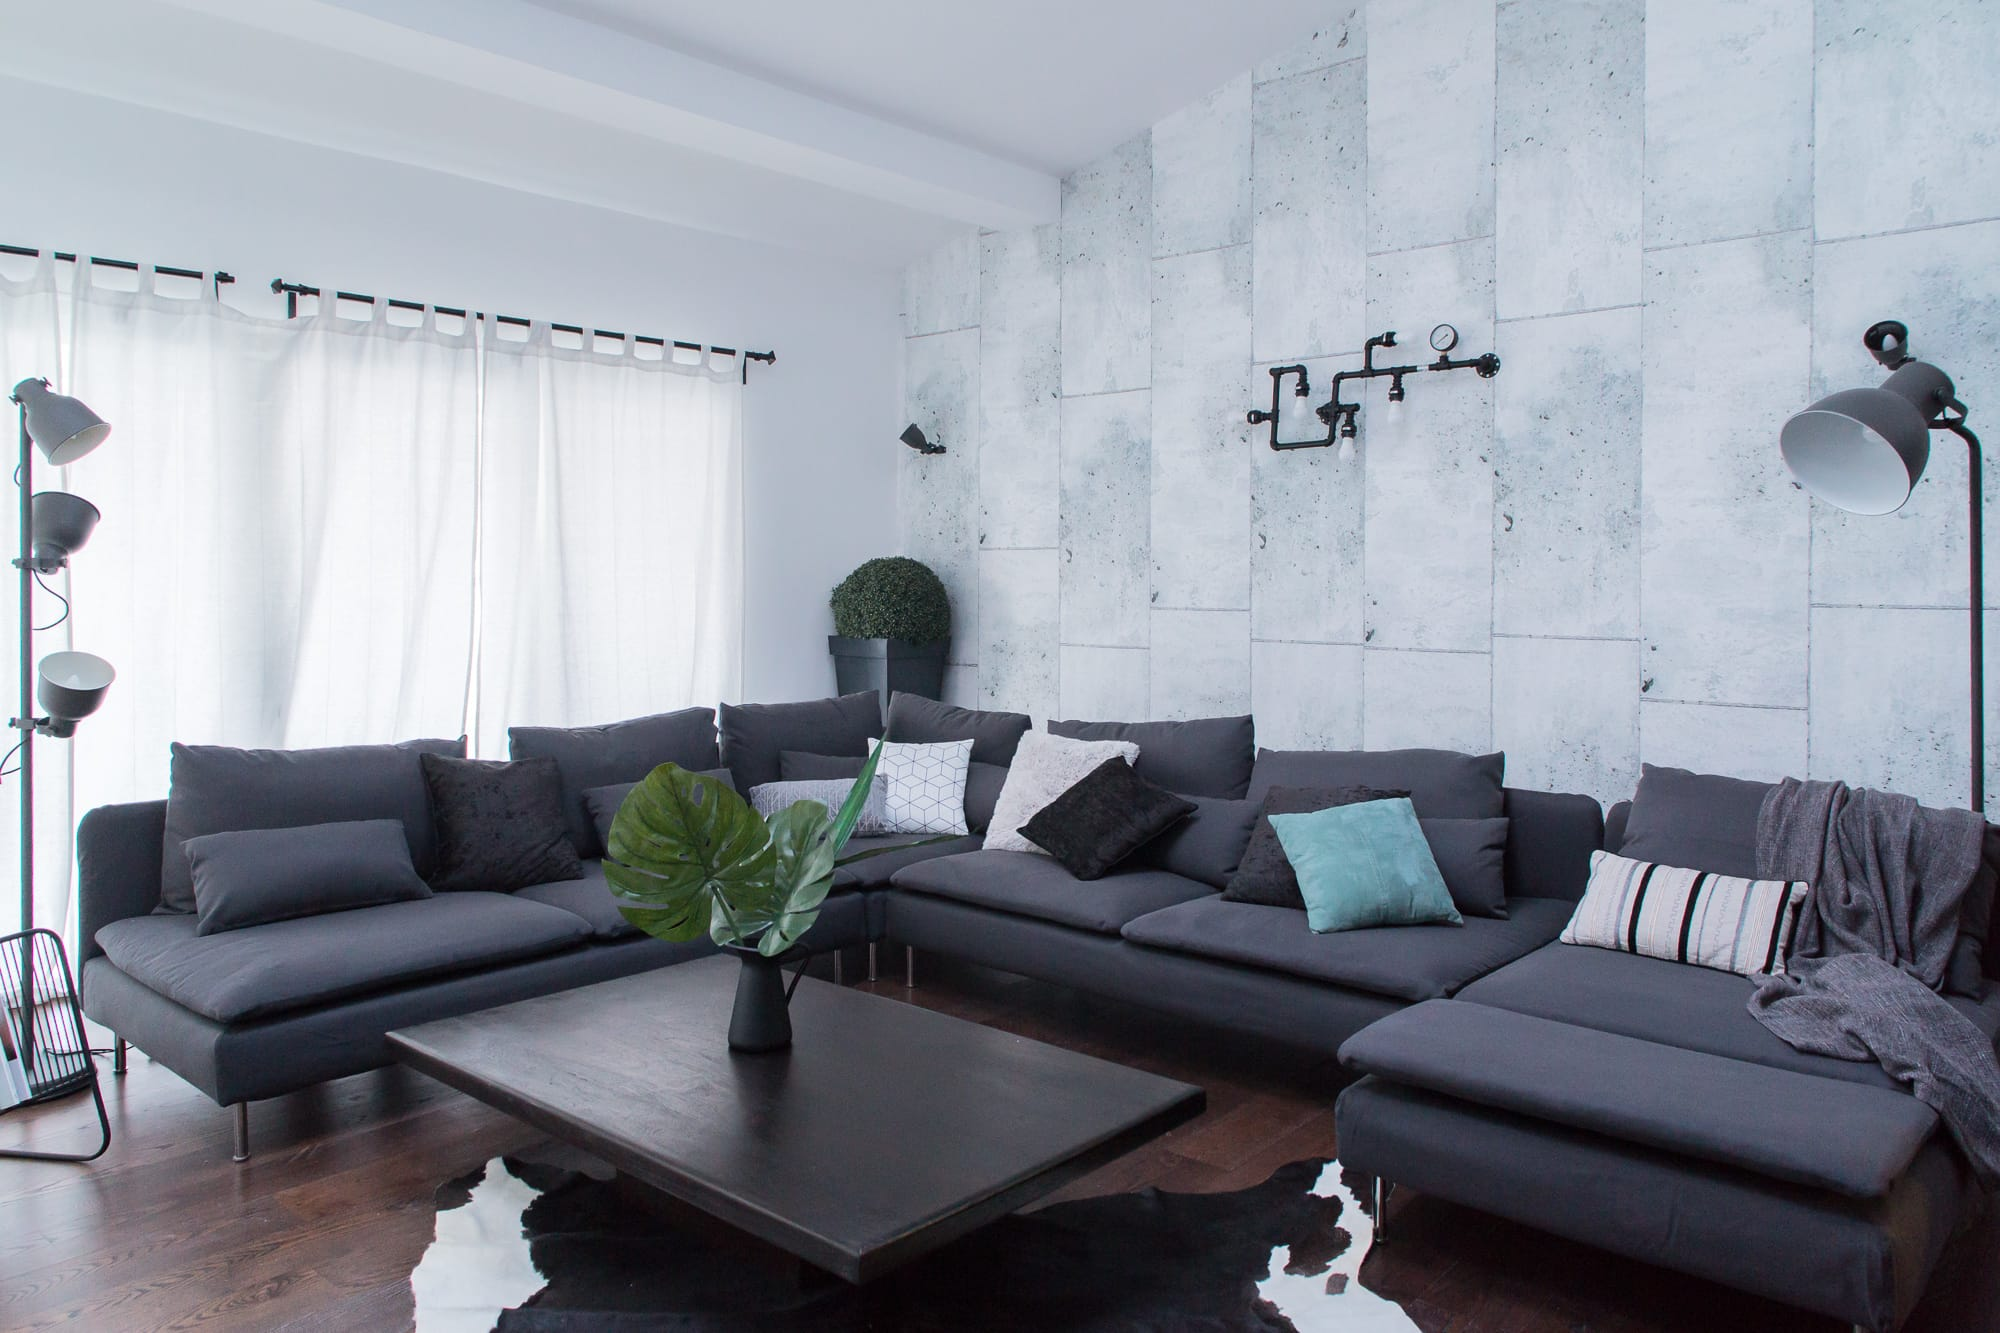 Gray concrete tiles and a white Soderhamn Ikea couch in a U shape and colorful throw pillows on top of it. There is a dark brown coffee table in front of the sofa and two light fixtures on the couch's side.